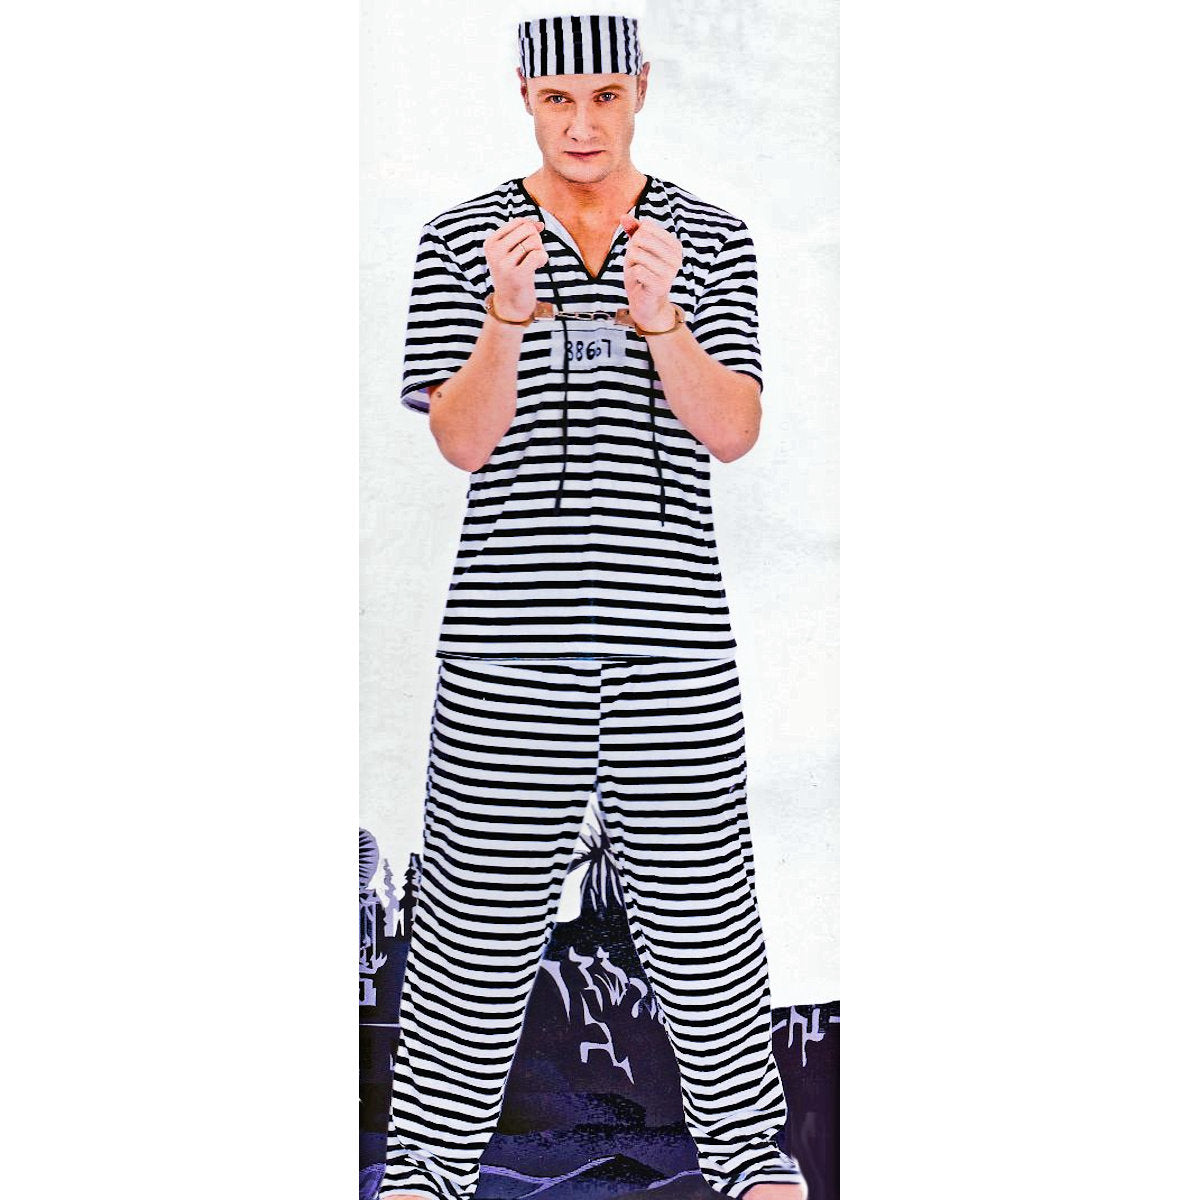 Robbers Convict Prisoner Jailbird Men's Fancy Dress Costume with Toy Handcuffs